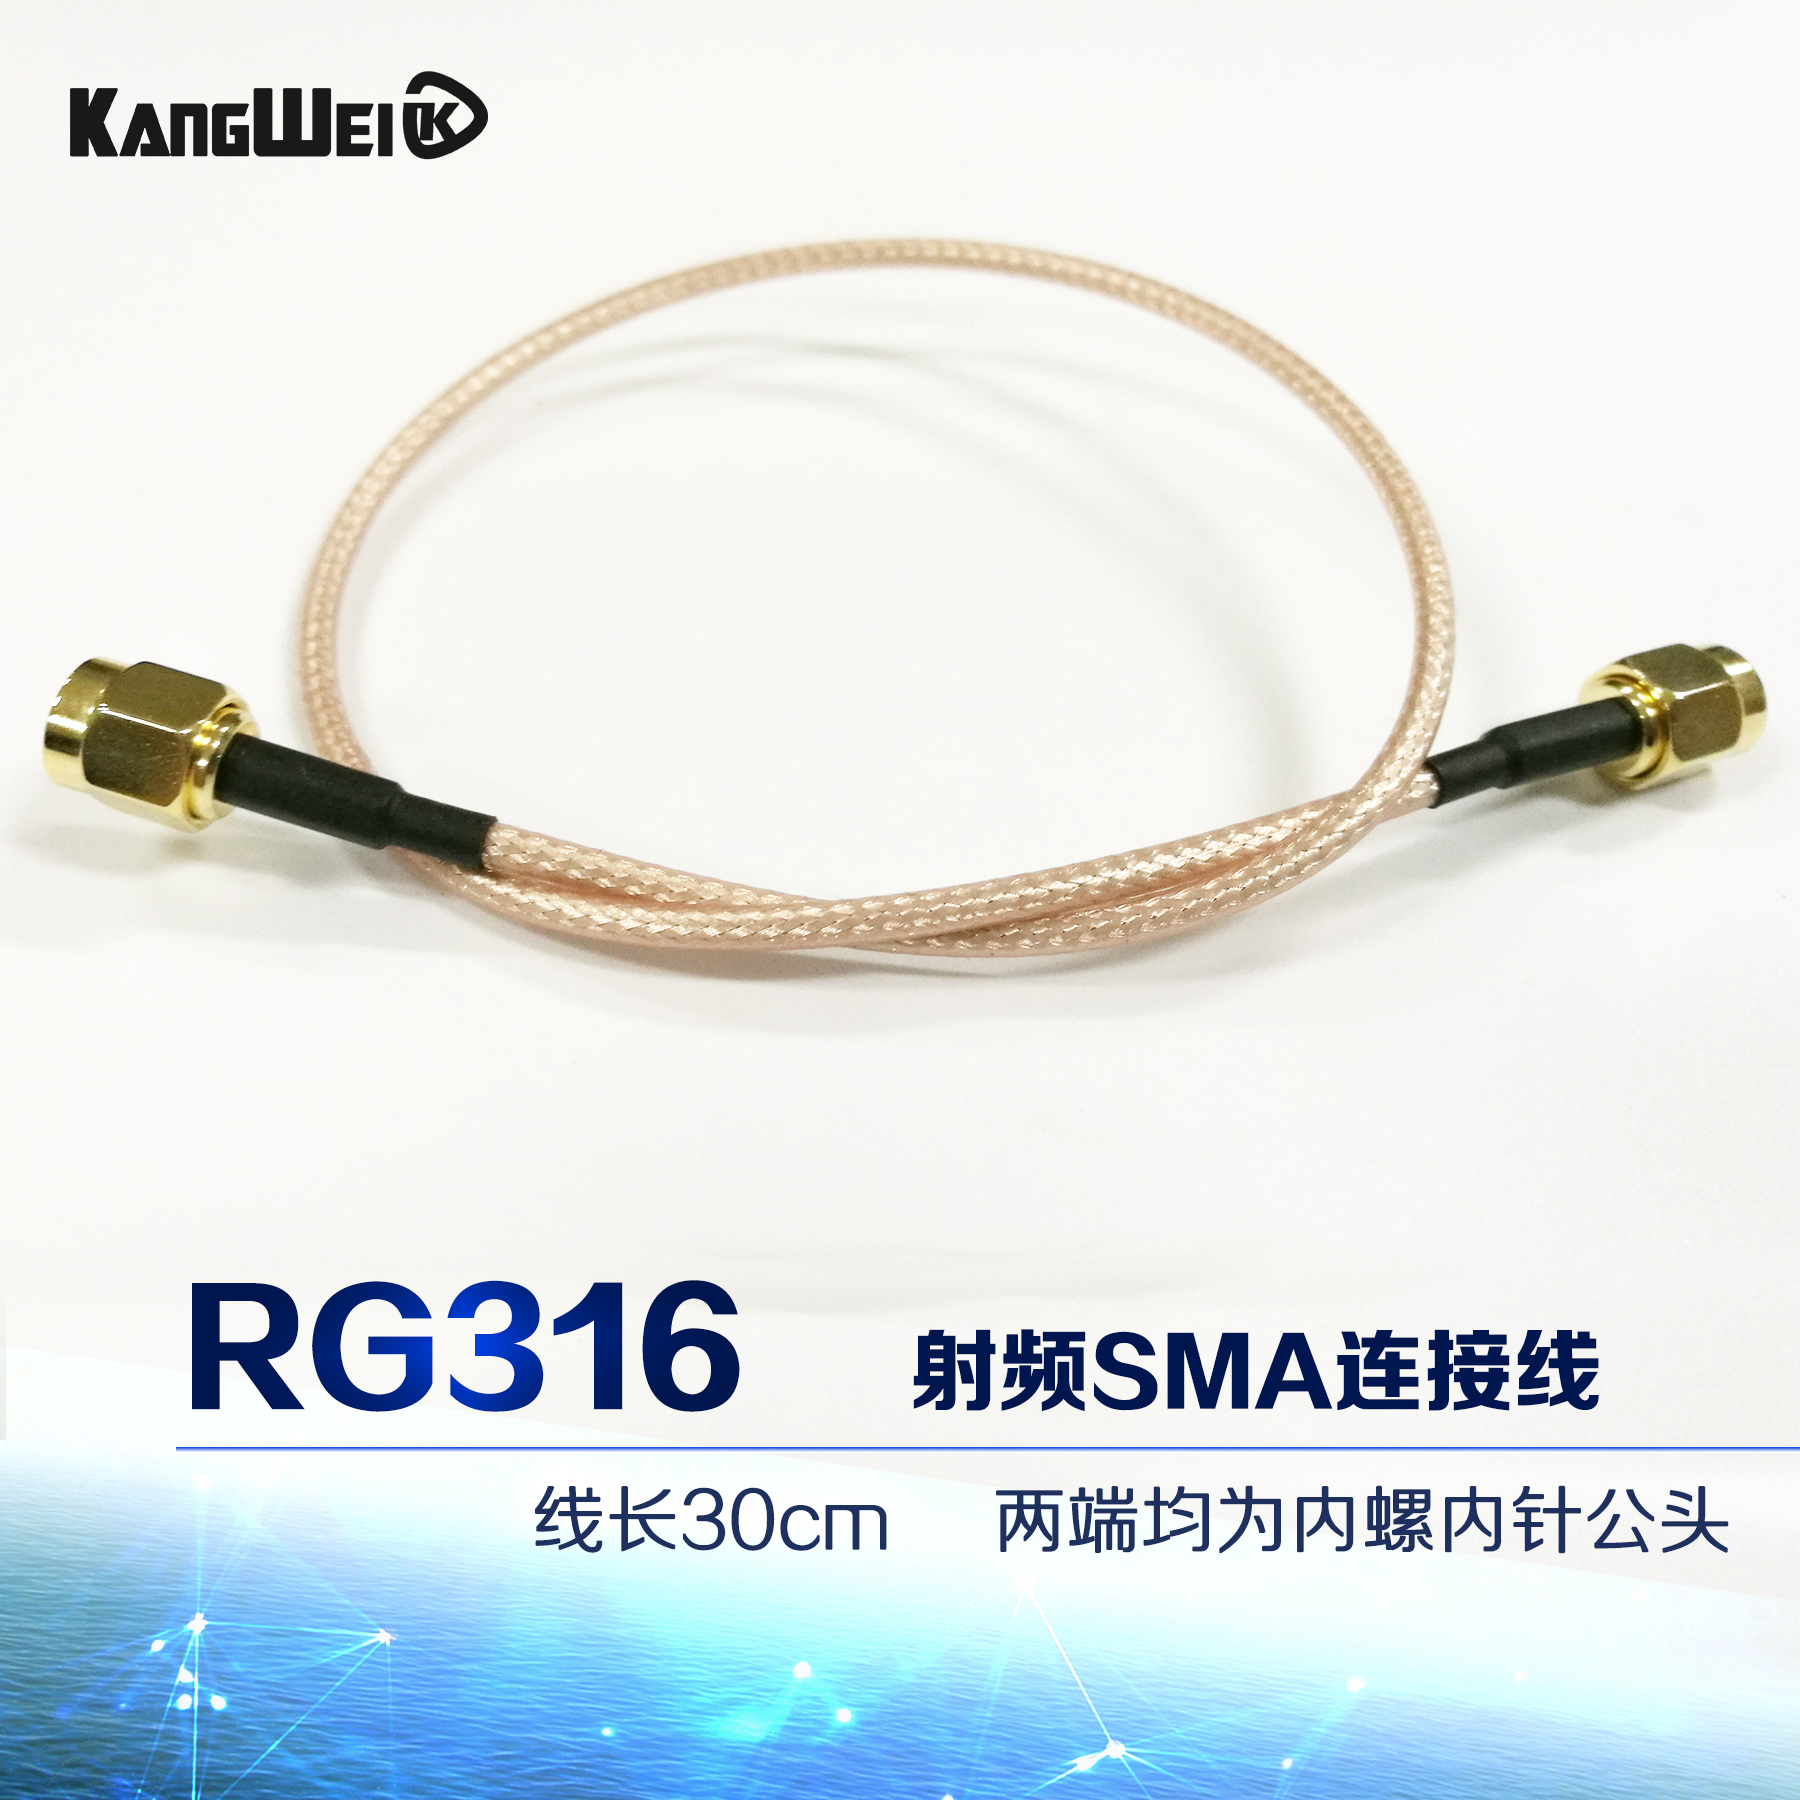 The RF SMA connecting line RG316 is internally threaded and the inner thread is 30 cm long